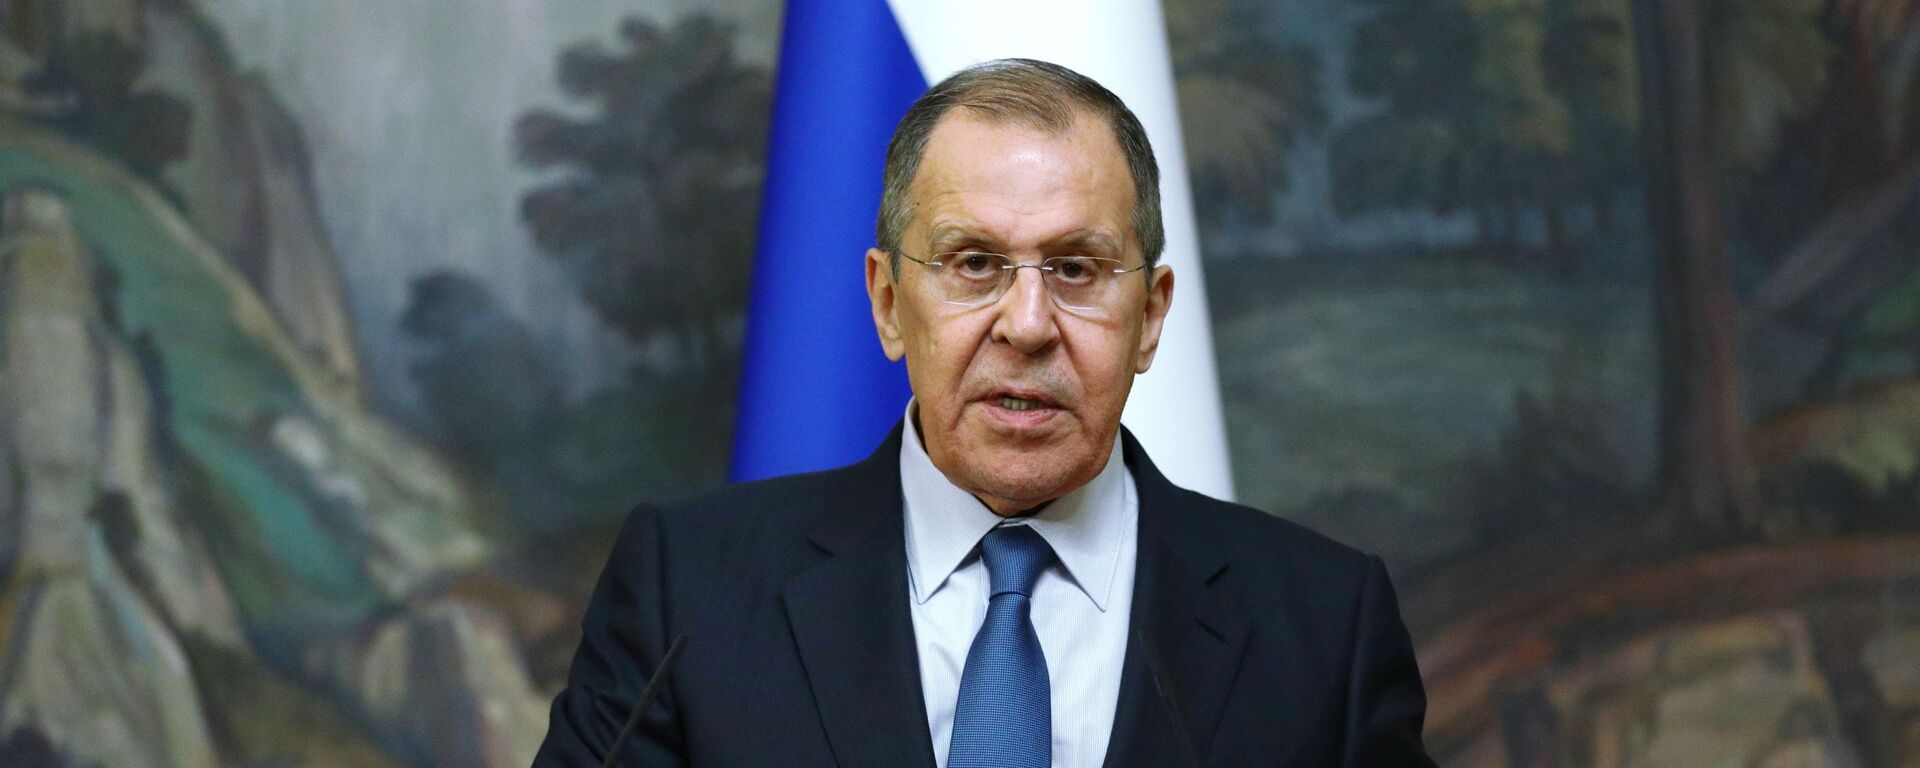 Russian Foreign Minister Sergey Lavrov delivers a joint statement after trilateral talks between Russia, Armenia and Azerbaijan over Nagorno-Karabakh ceasefire, 10 October 2020 - Sputnik Italia, 1920, 19.08.2021